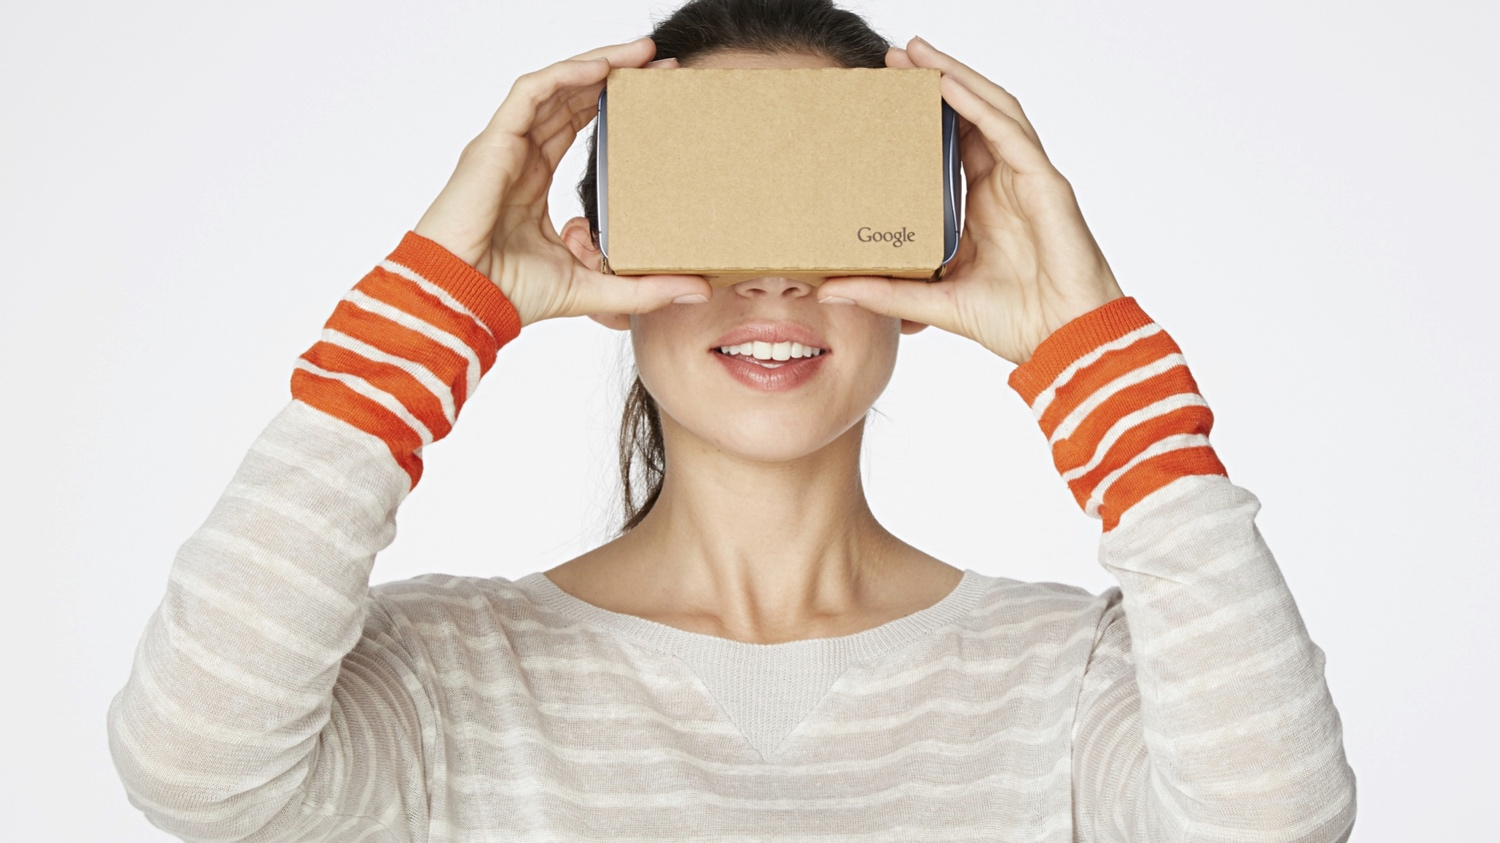 Why Cardboard is driving VR tech